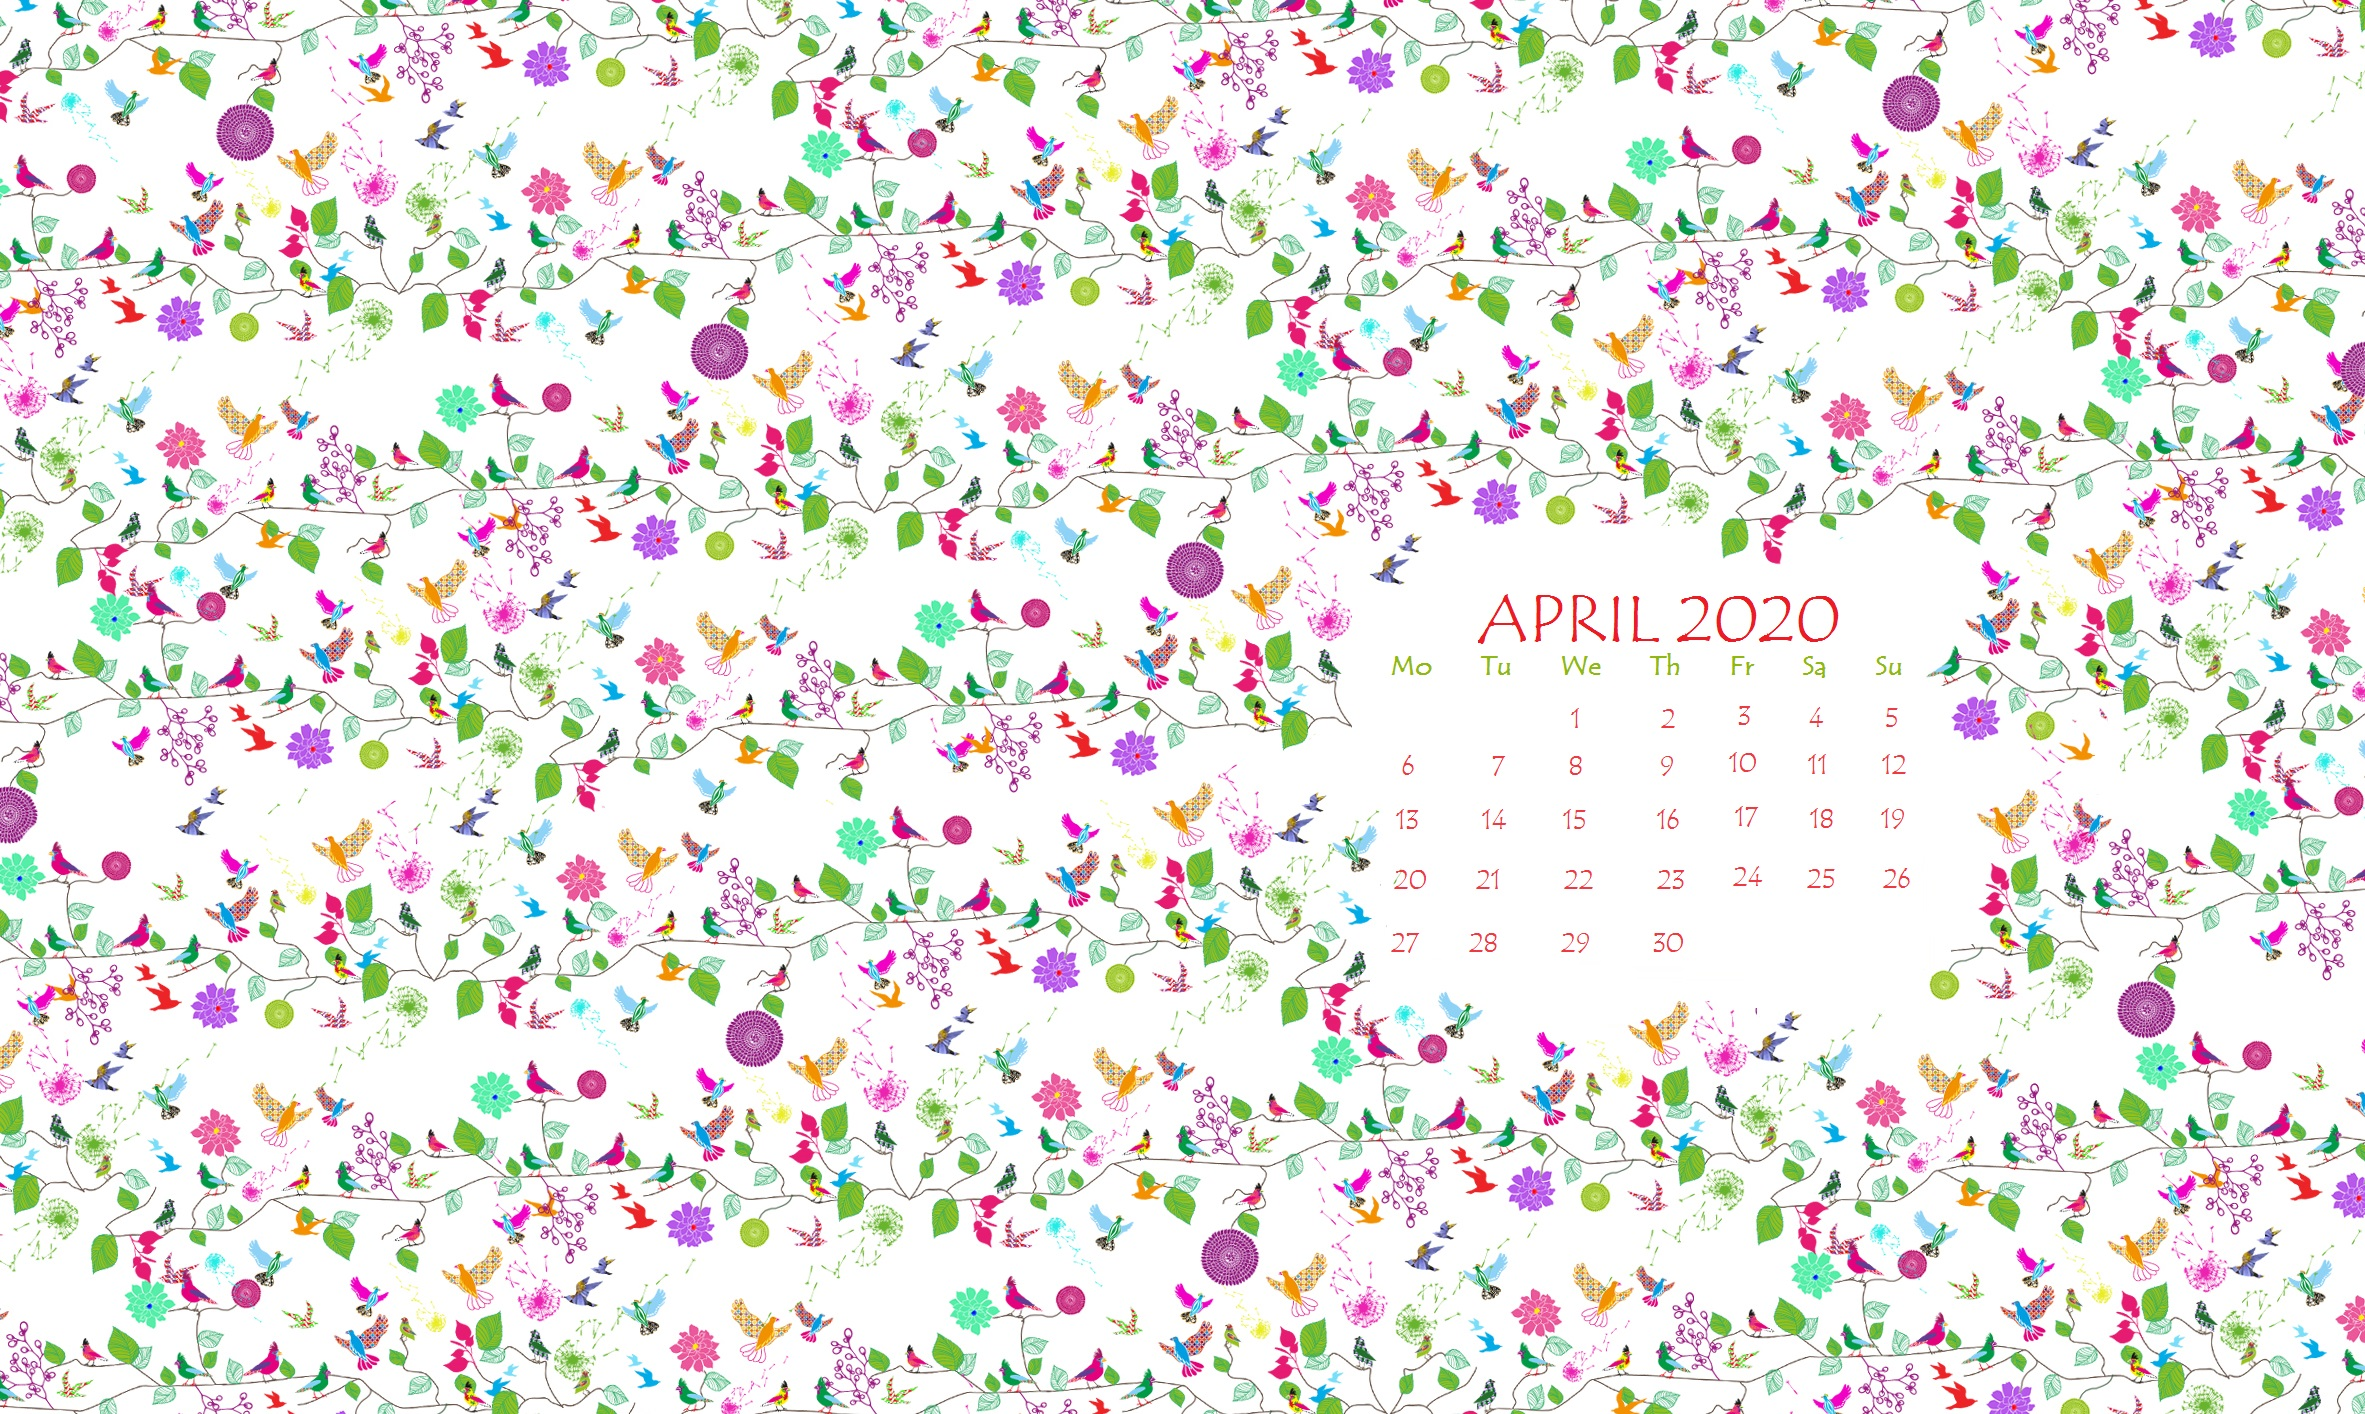 Free Download April 2020 Wallpaper Calendar Calendar 2020